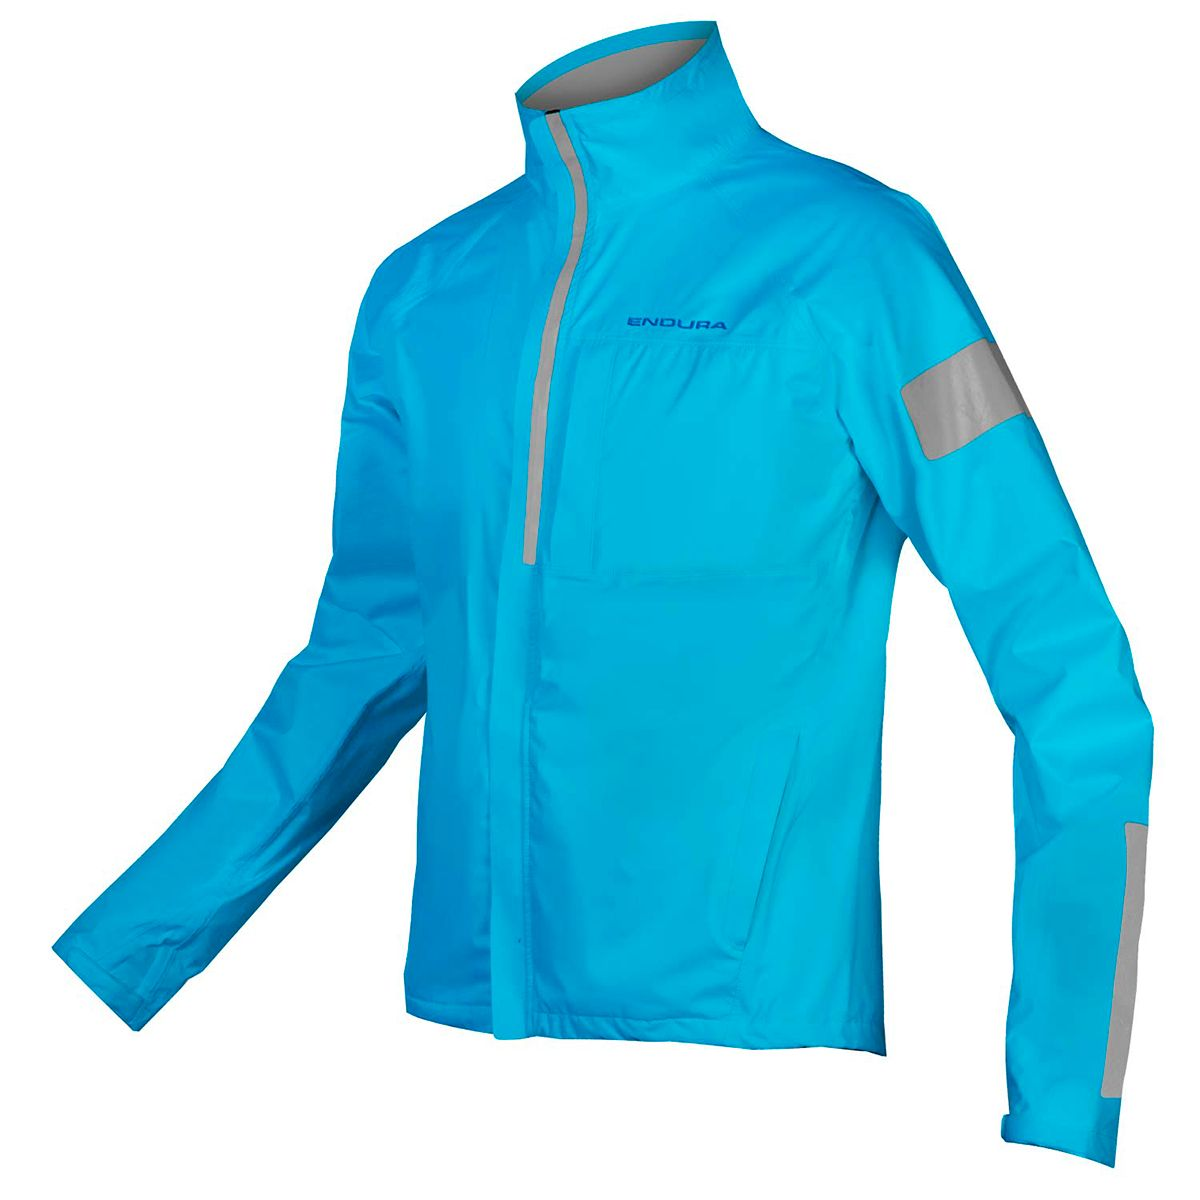 URBAN LUMINITE JACKET for men